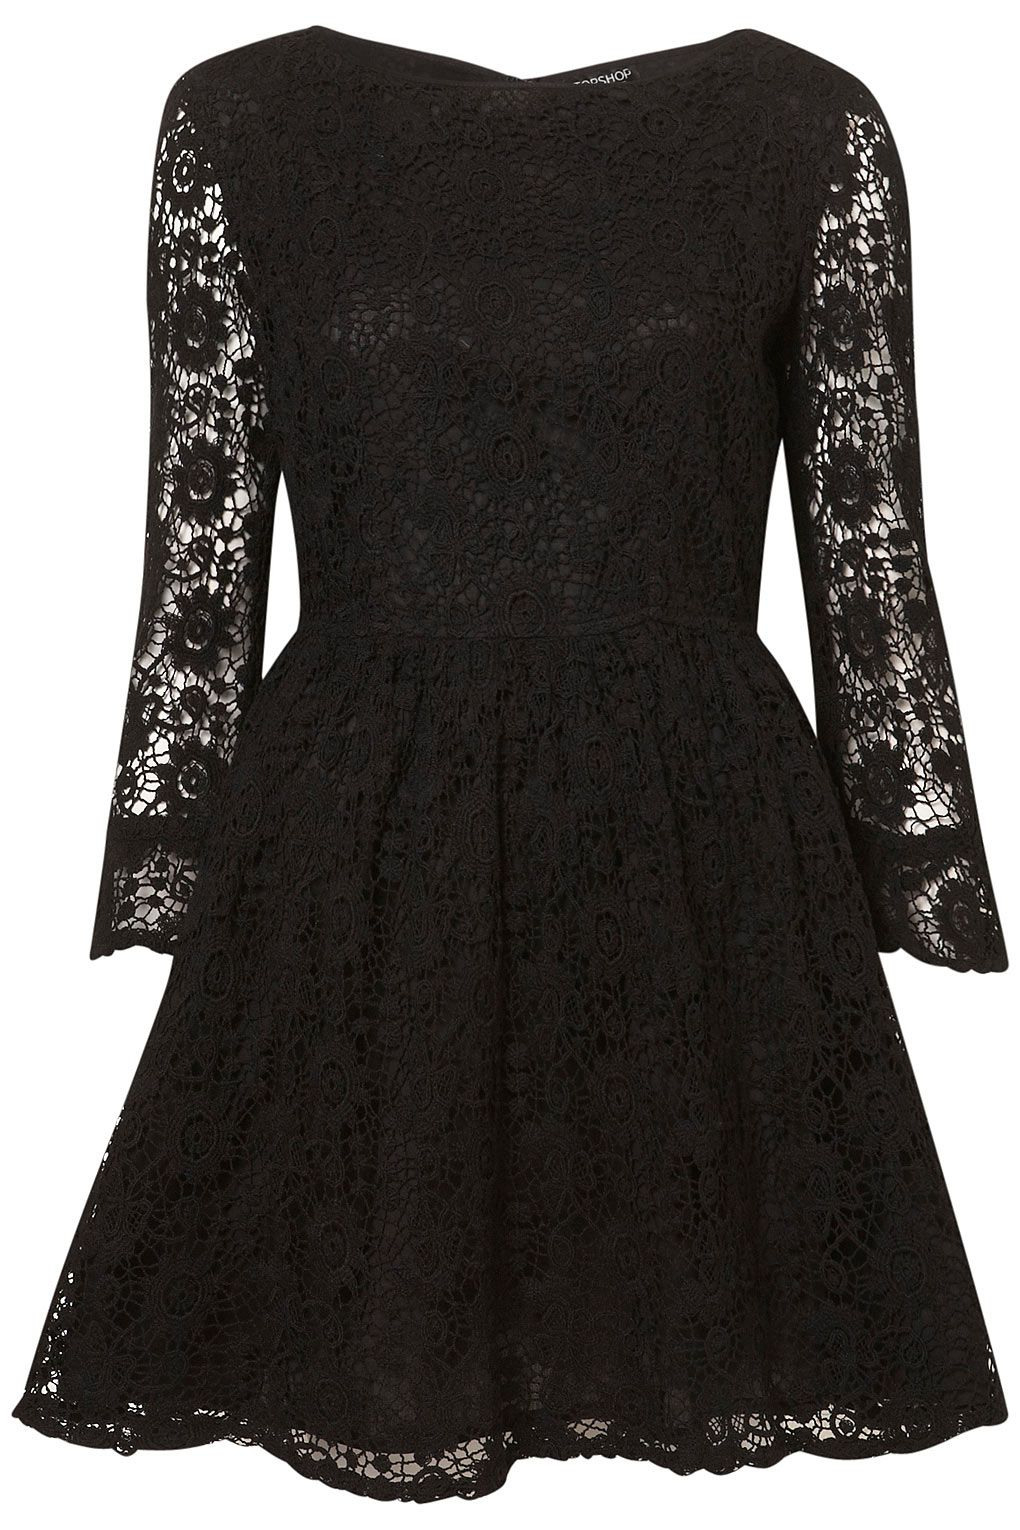 Crochet Lace Flippy Dress From Top Shops Witching Hour